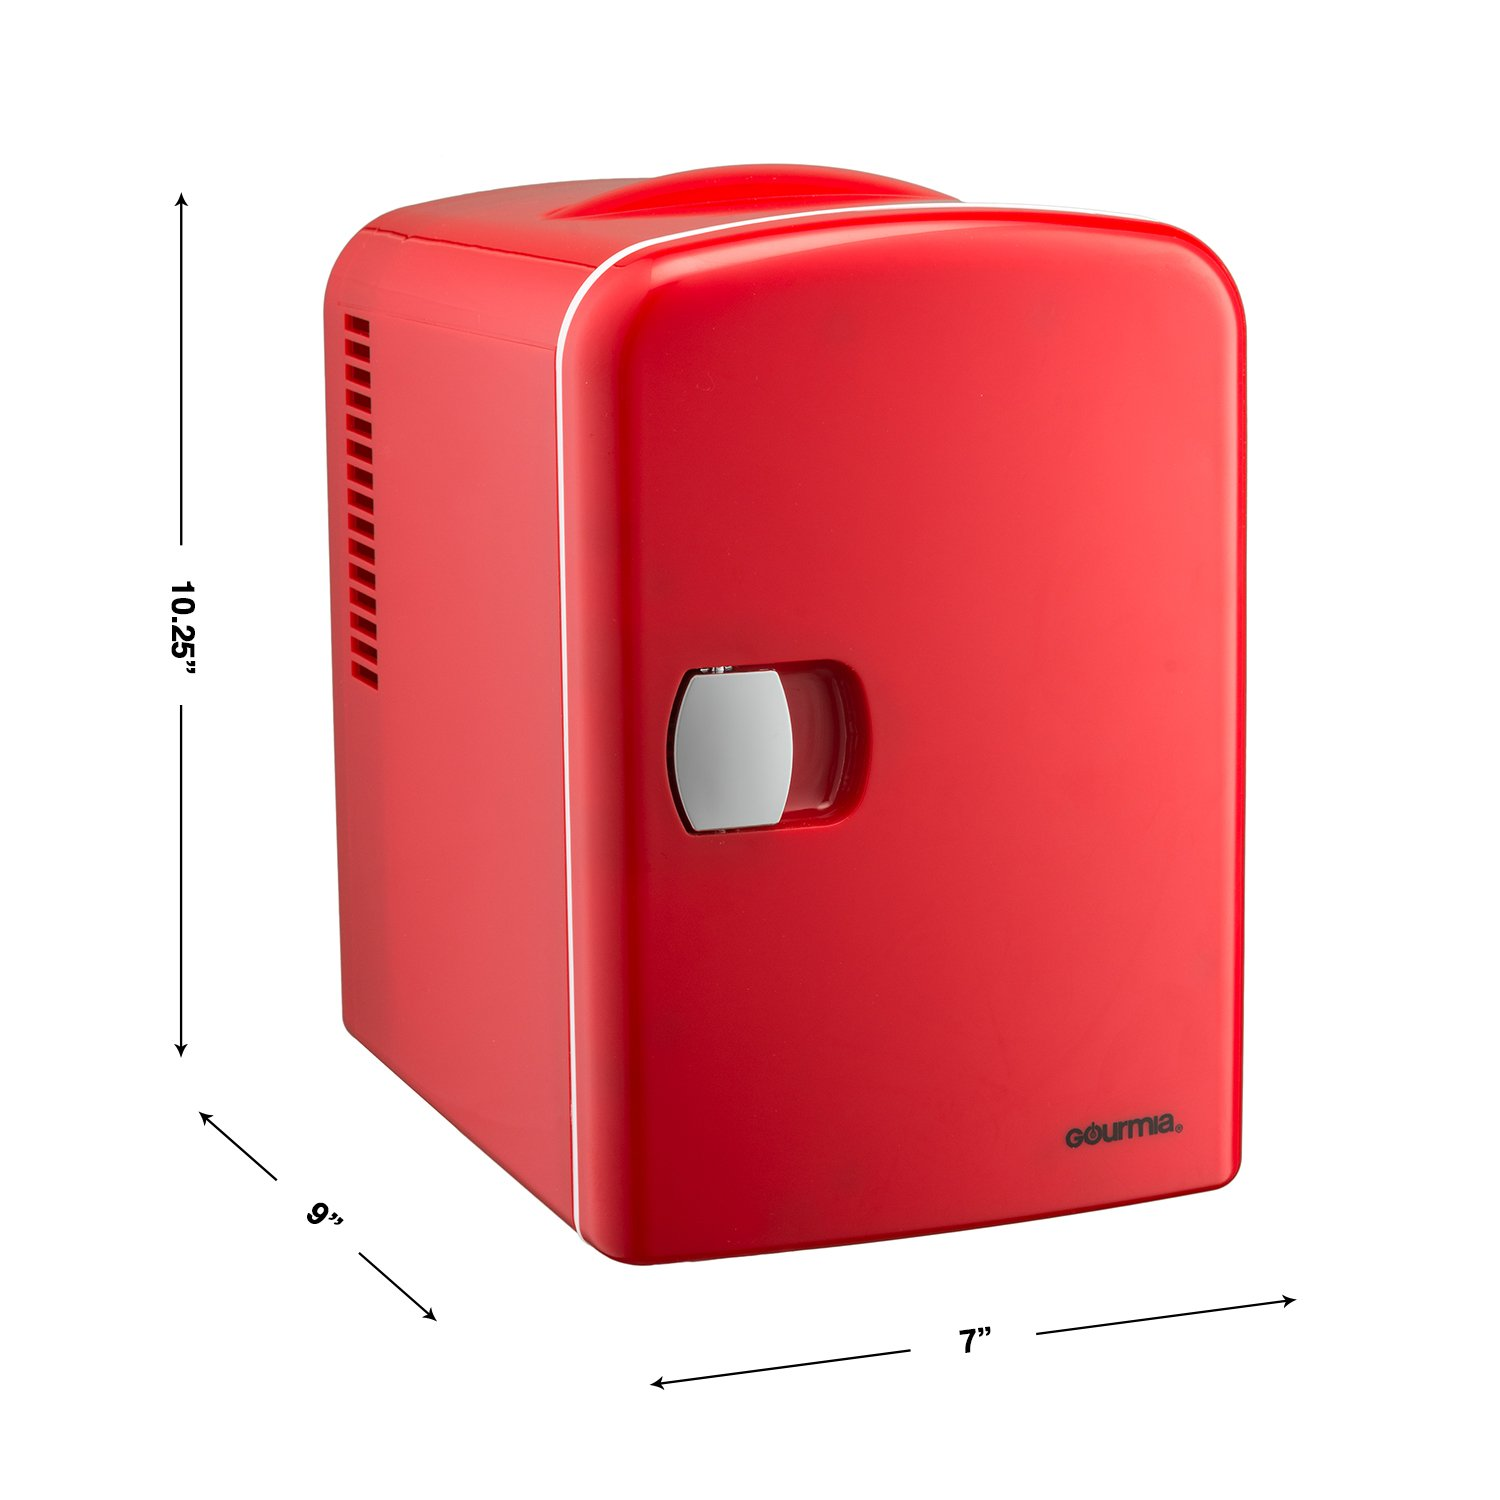 Gourmia GMF600 Thermoelectric Mini Fridge Cooler and Warmer - 4 Liter/ 6 Can - For Home,Office, Car, Dorm or Boat - Compact & Portable - AC & DC Power Cords - Red by Gourmia (Image #8)